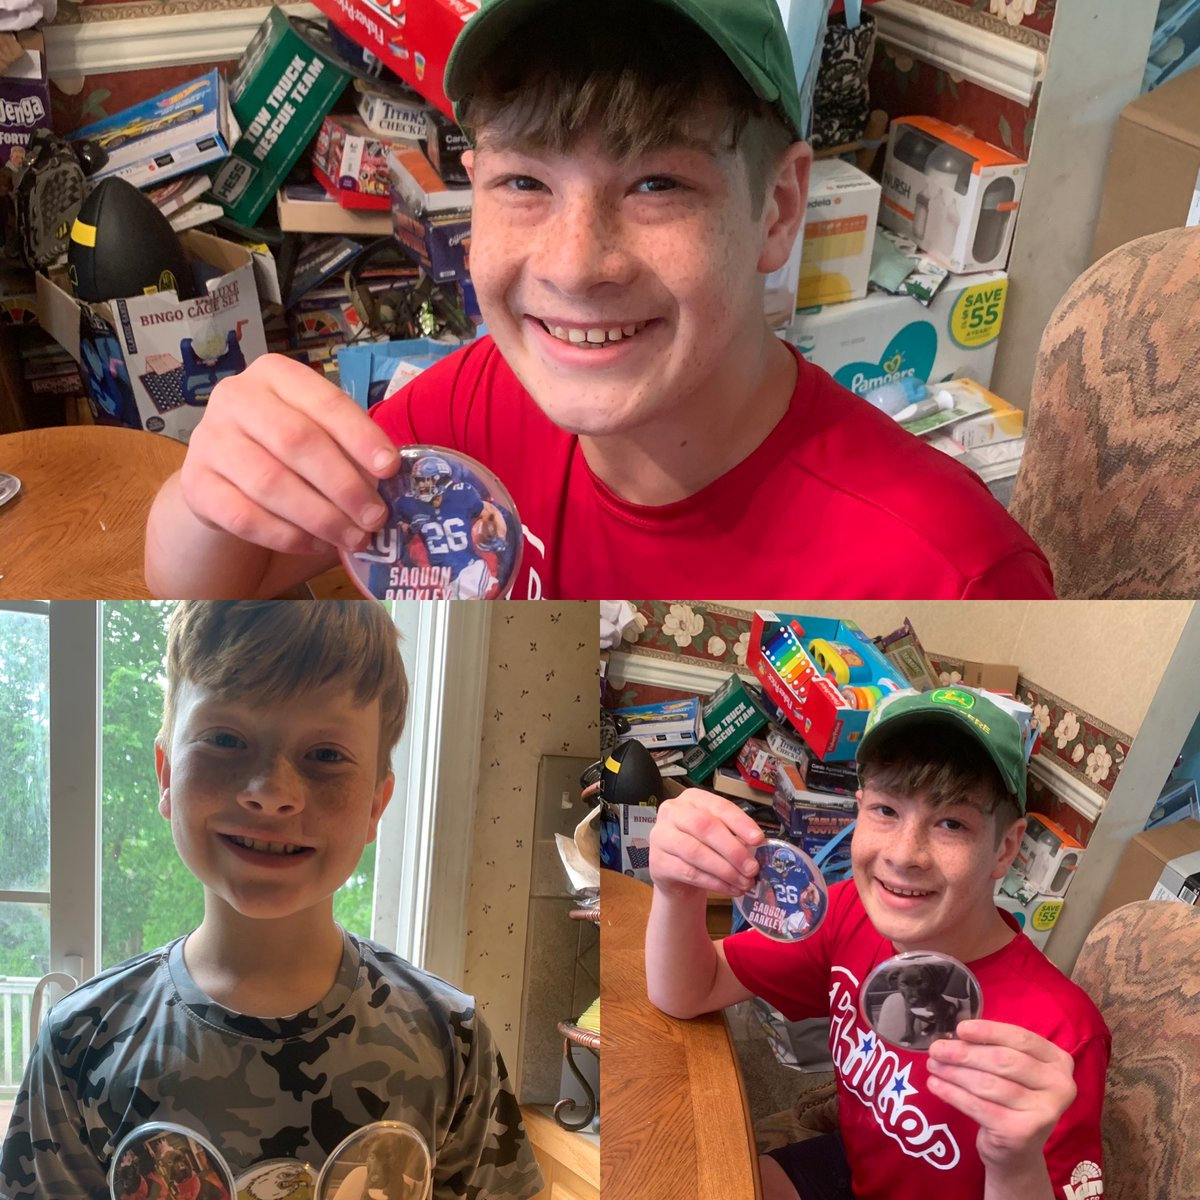 Happy campers sharing their homemade sports buttons! #magicofchildhood Great job guys! pic.twitter.com/8agUQutK7j